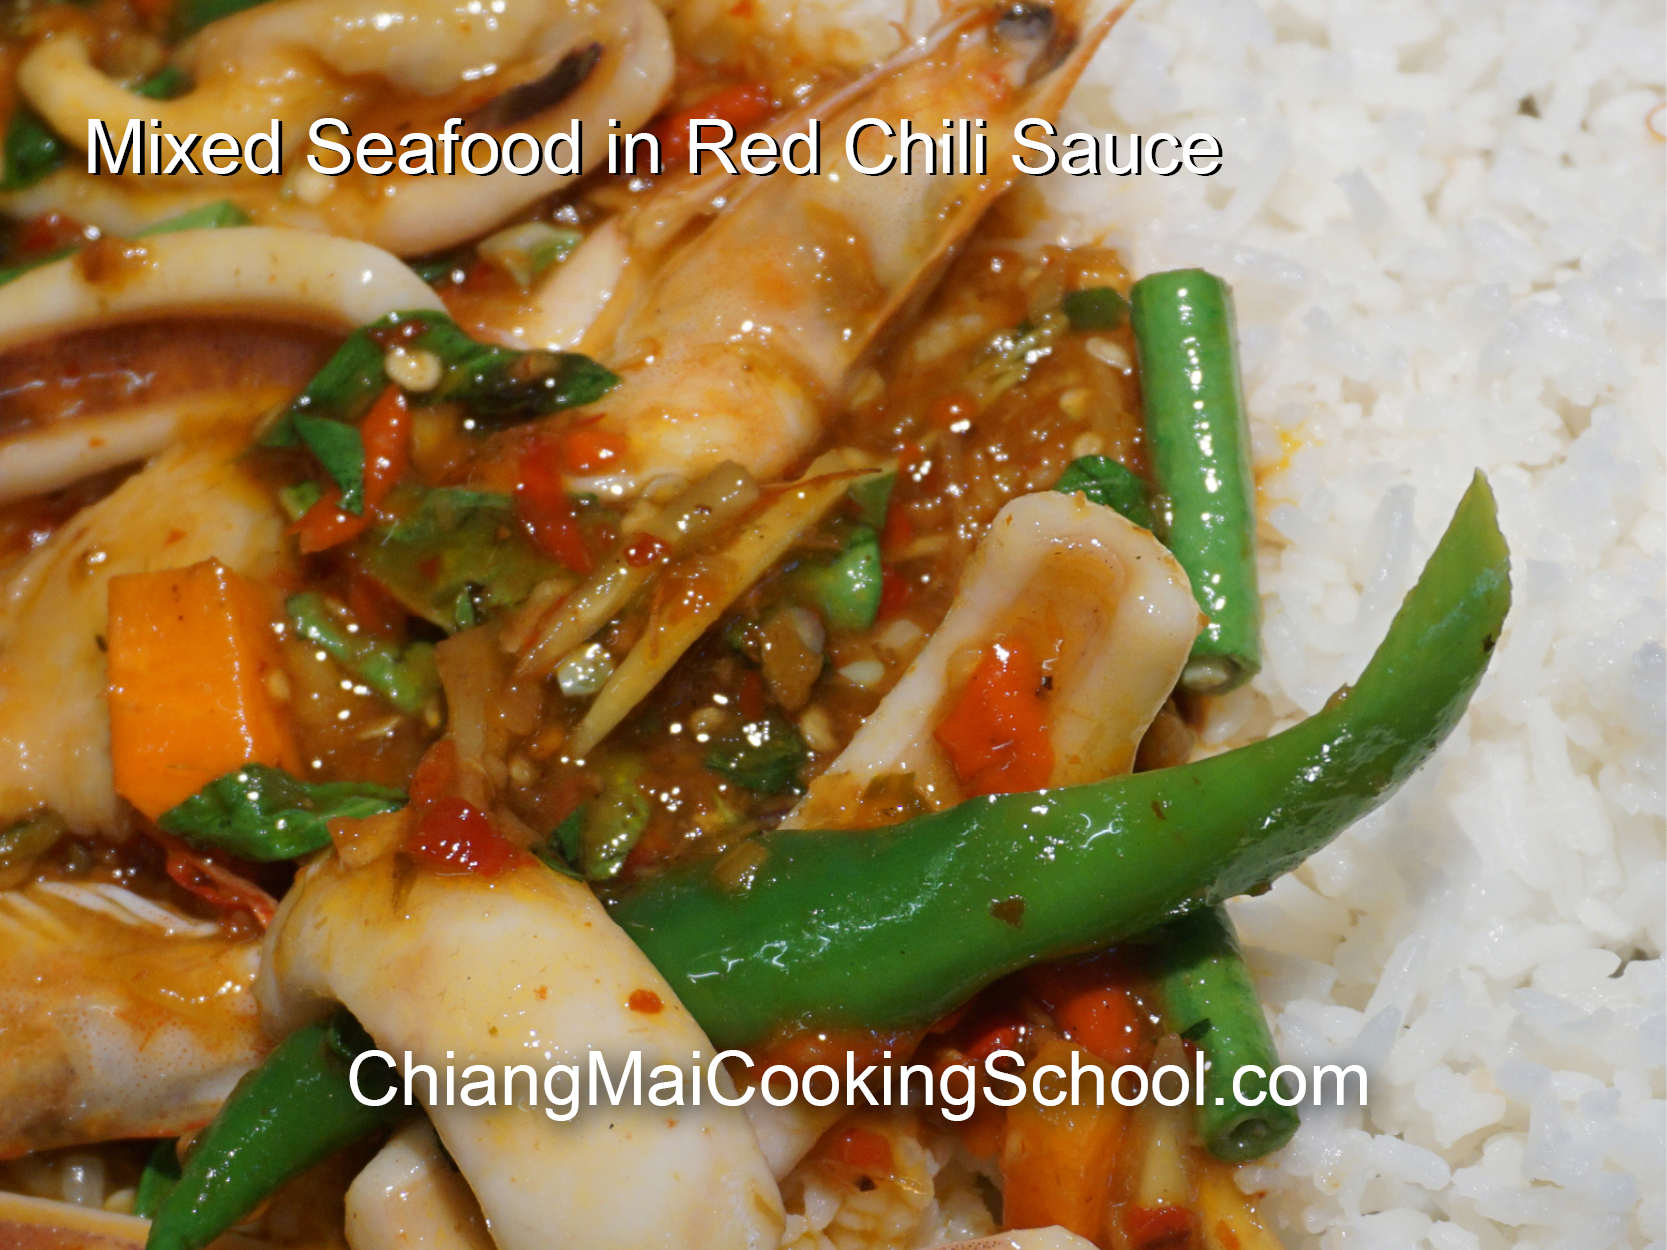 Delicious Mixed Seafood in Red Chili Sauce from Chiang Mai Cooking School